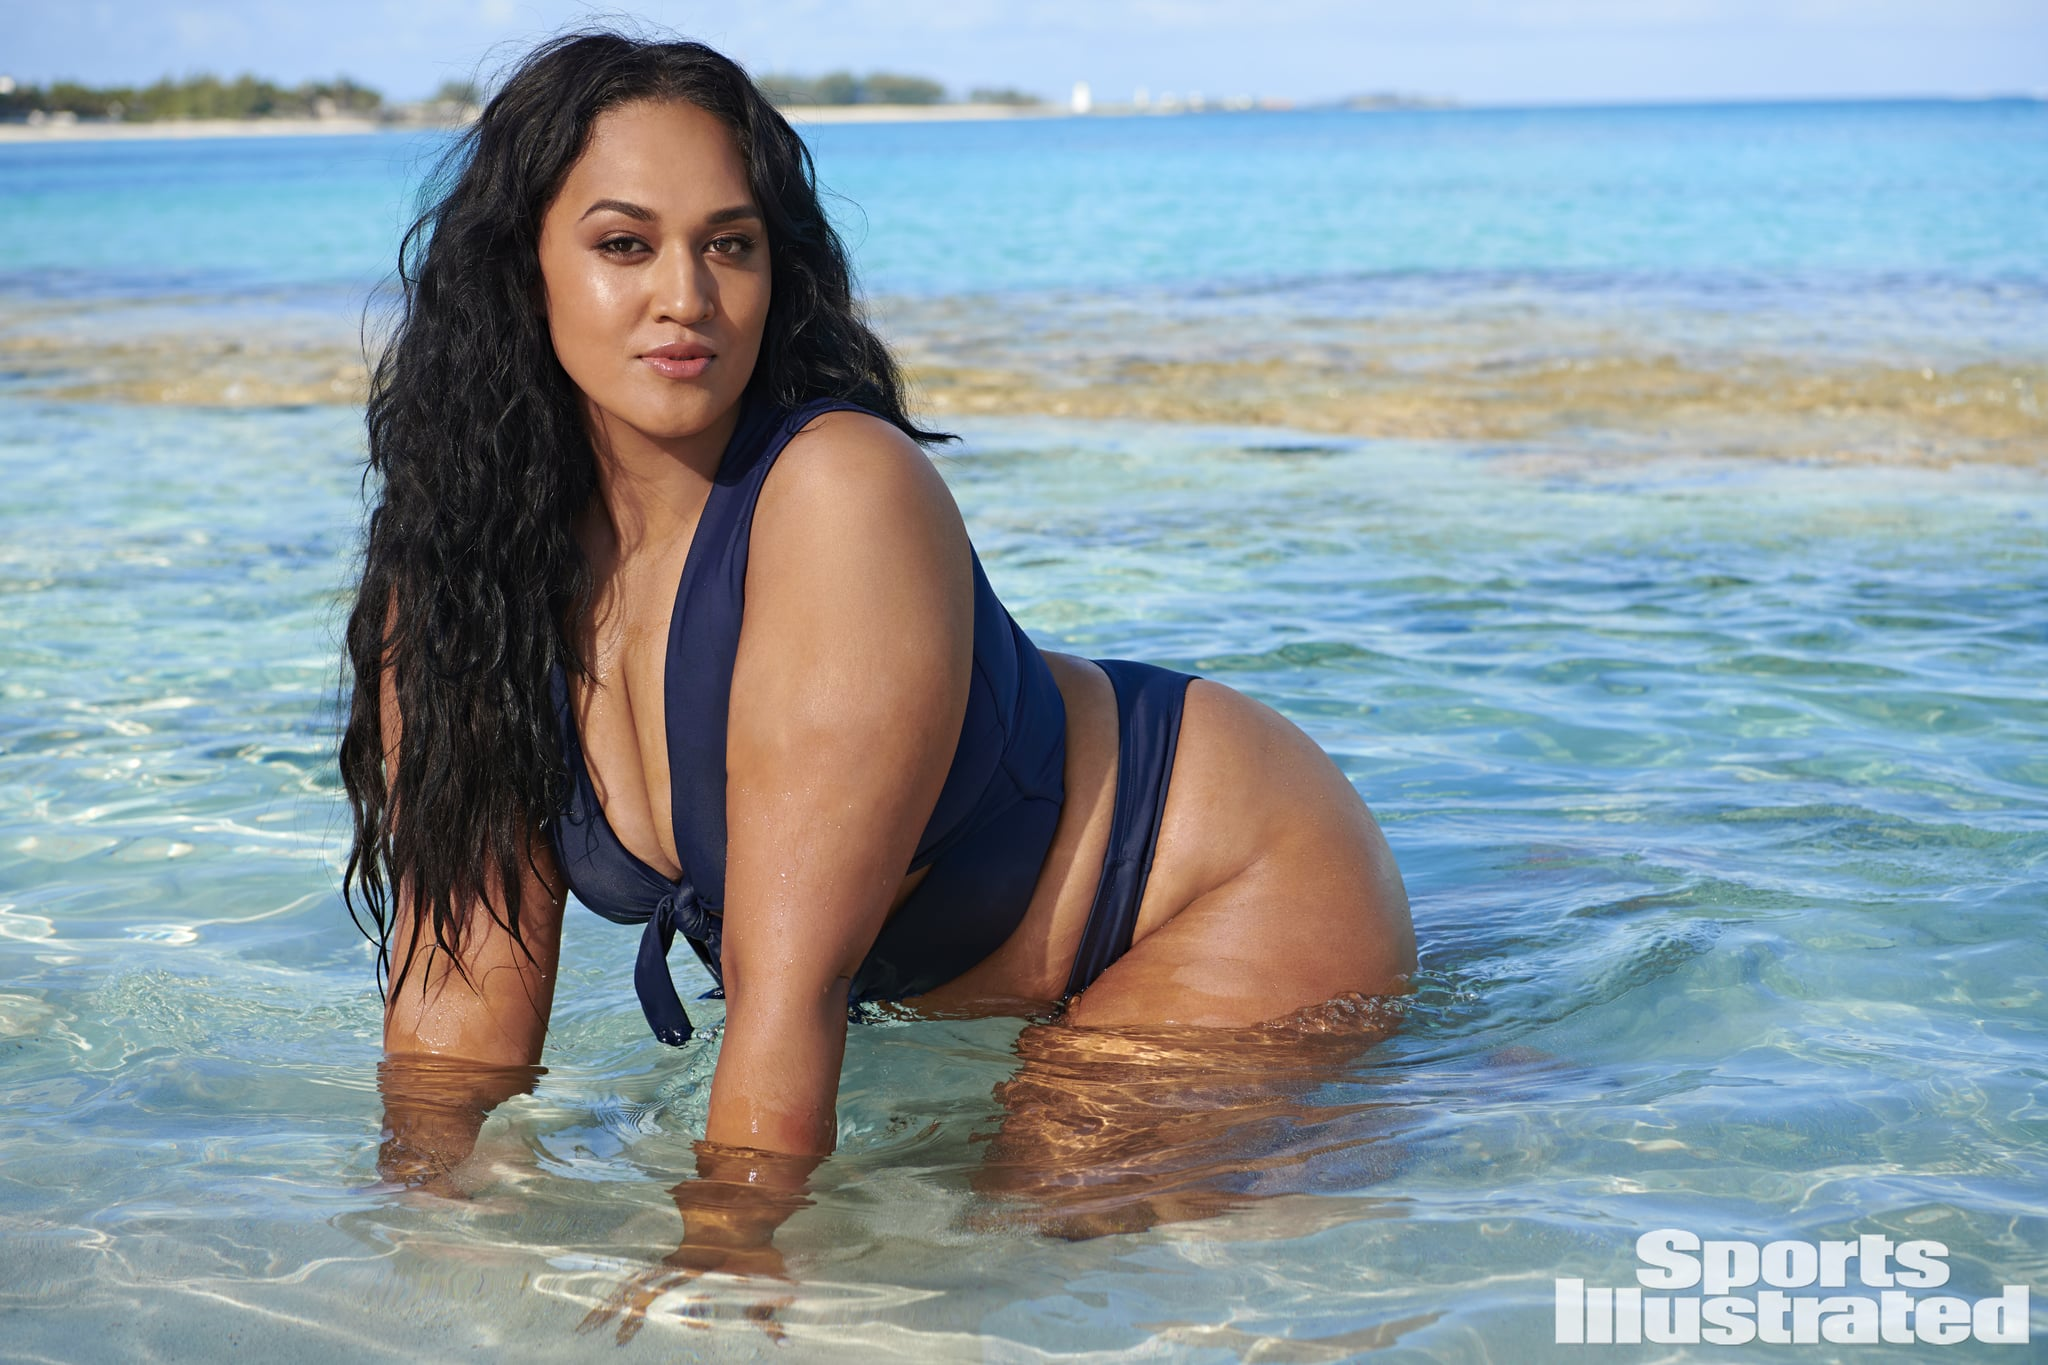 SI Swim Model Veronica Pome'e Opens Up About Depression and How Exercise Helps Her Manage It